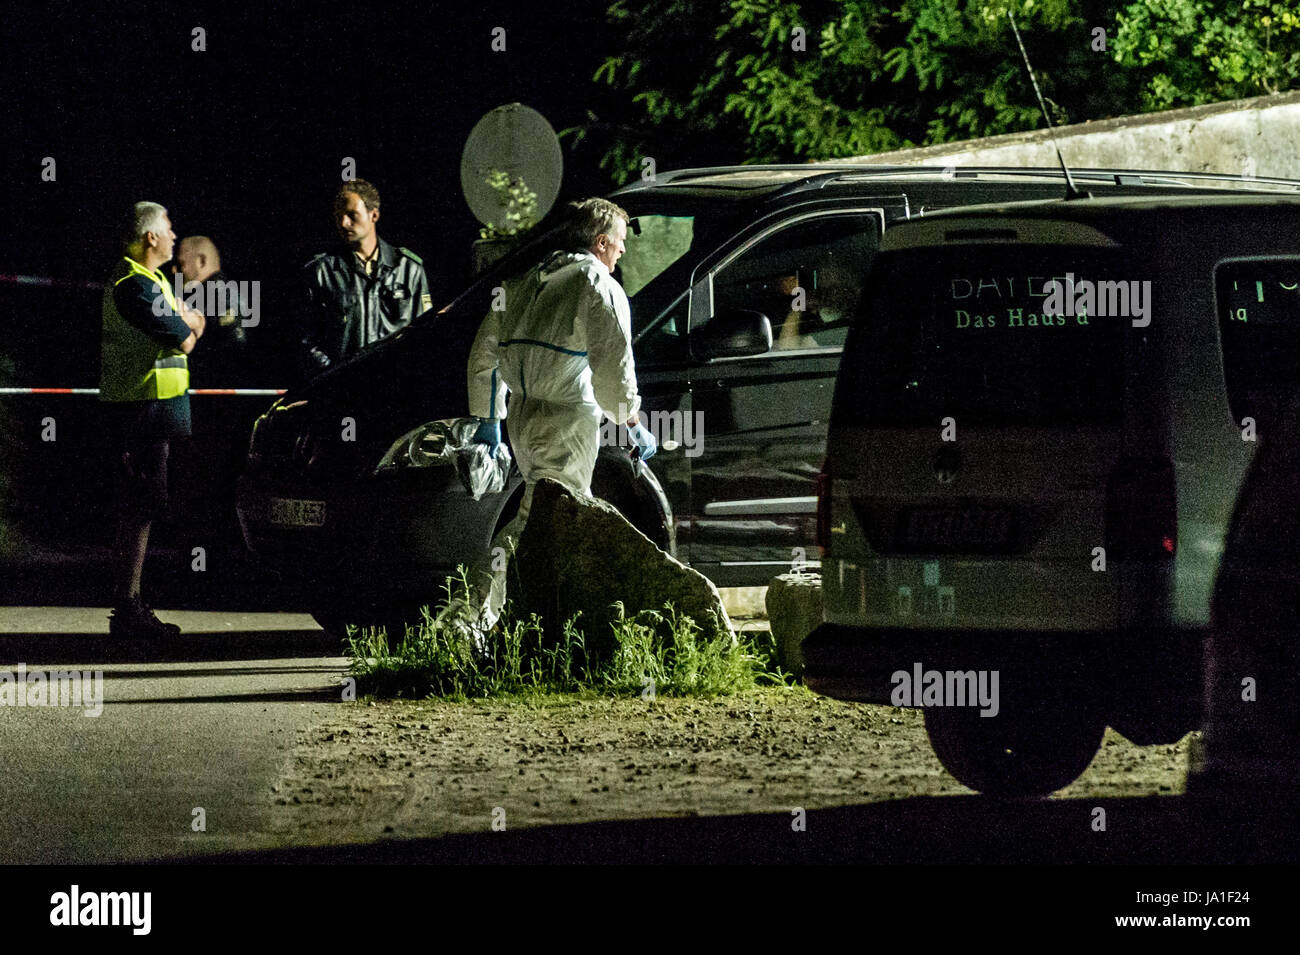 Arnschwang, Germany. 3rd June, 2017. dpatop - Police officers stand on the premises of an asylum home near Arnschwang, - Stock Image